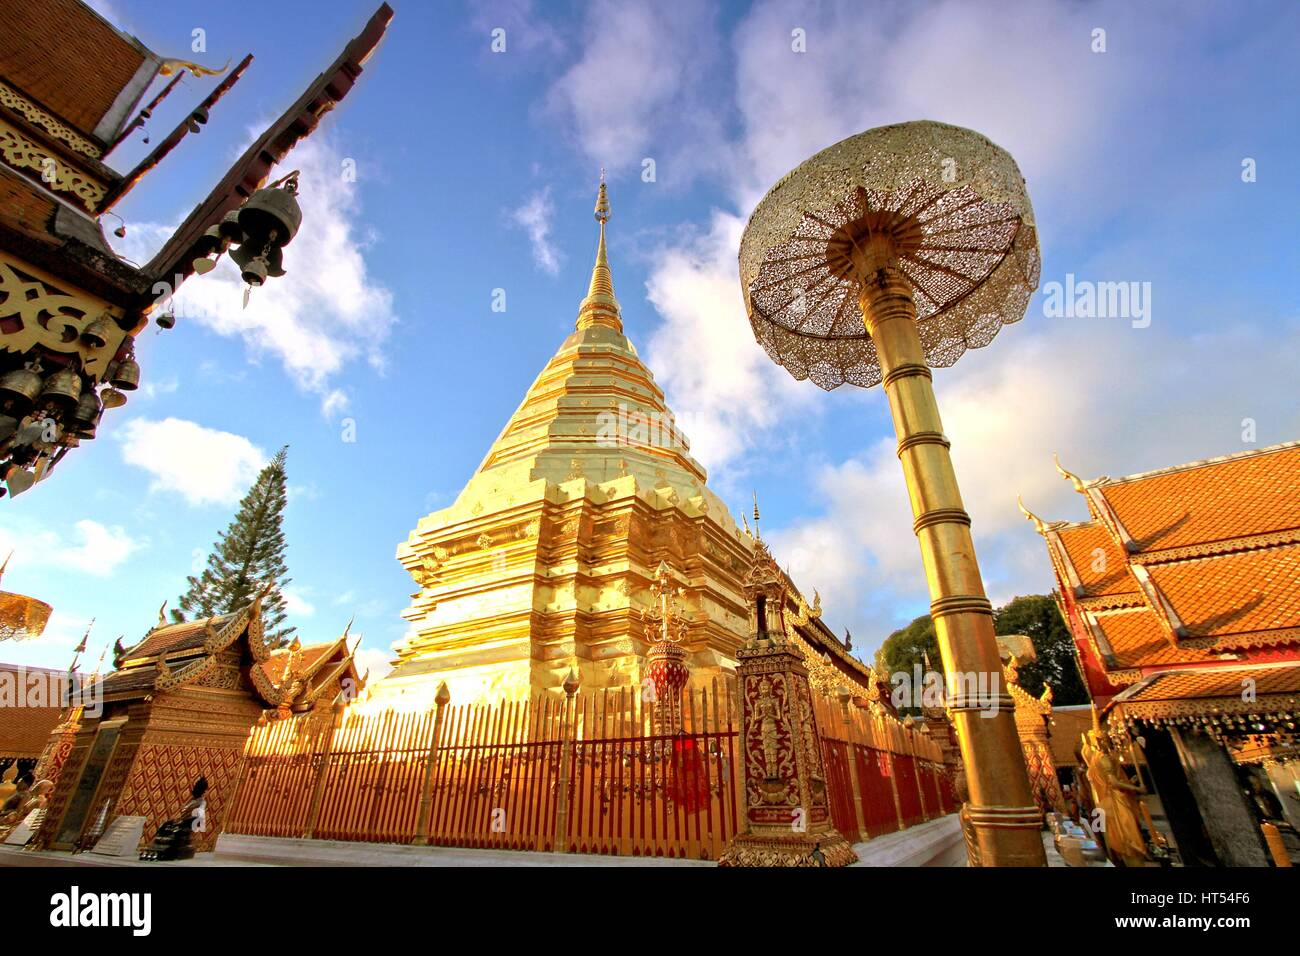 Golden pagoda against clear blue sky at Wat Phra That Doi Suthep, A famous Theravada buddhist temple at Chiang Mai, - Stock Image